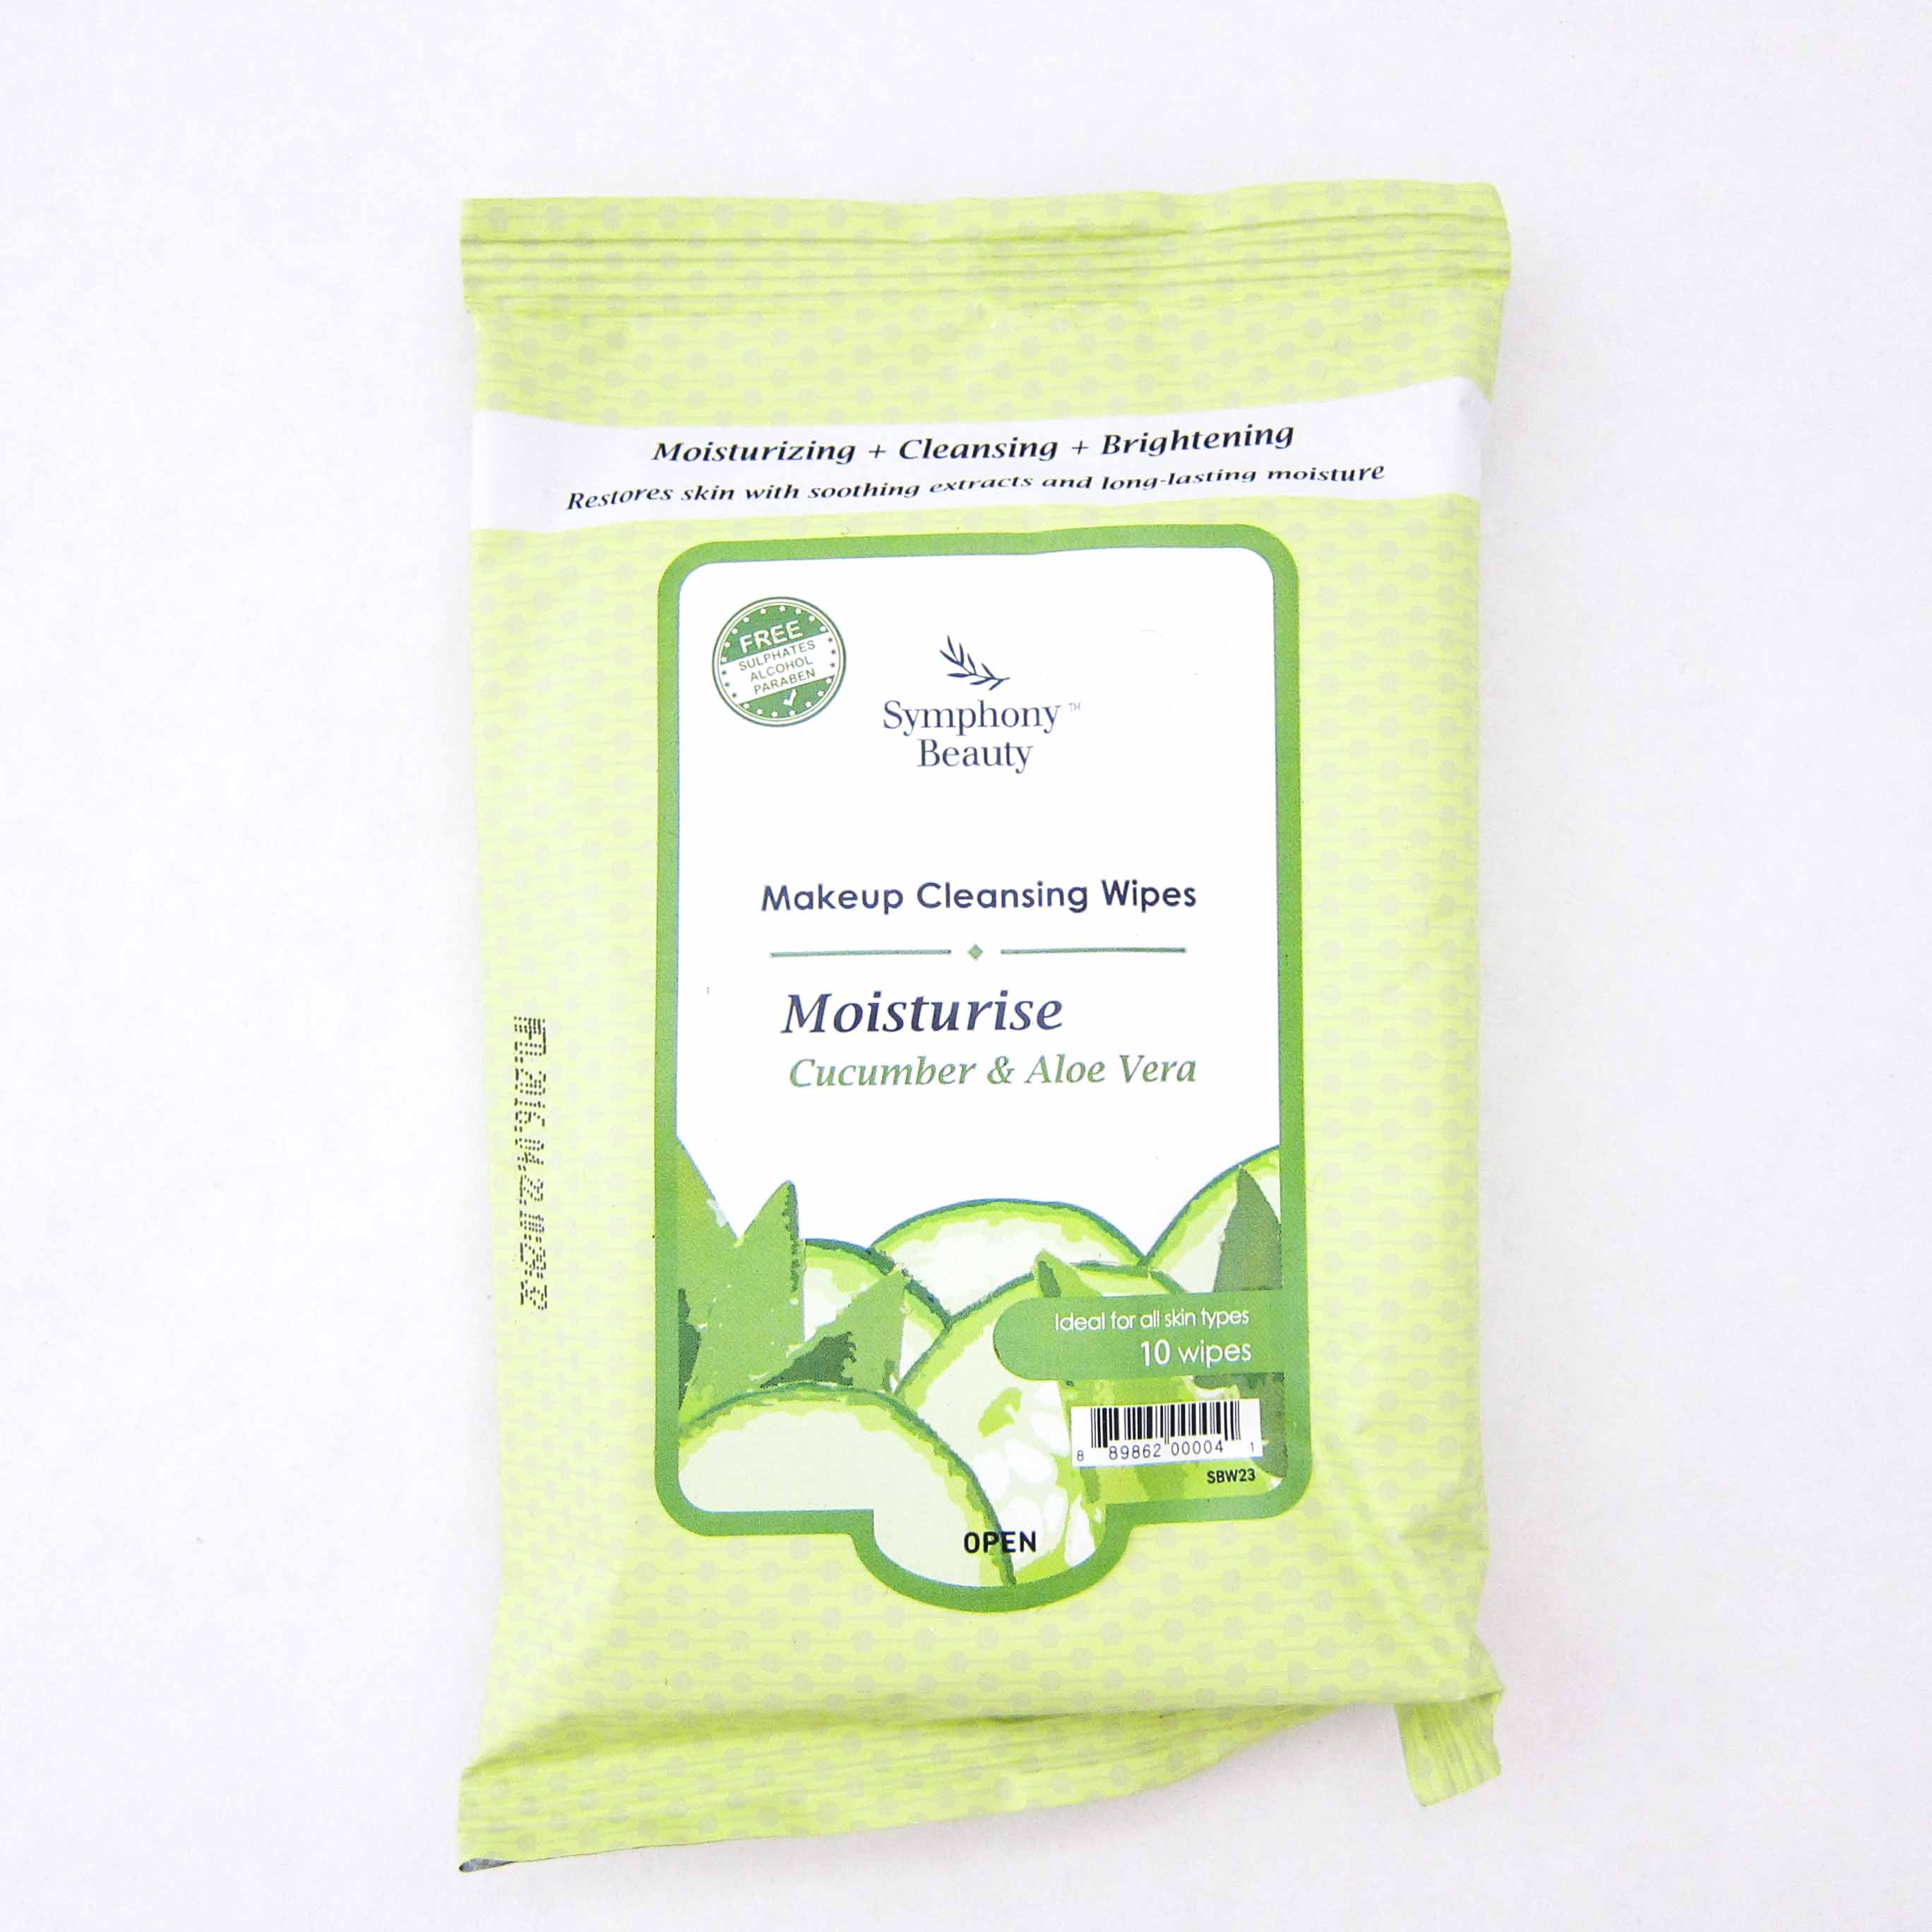 Symphony Beauty Makeup Cleansing Wipes